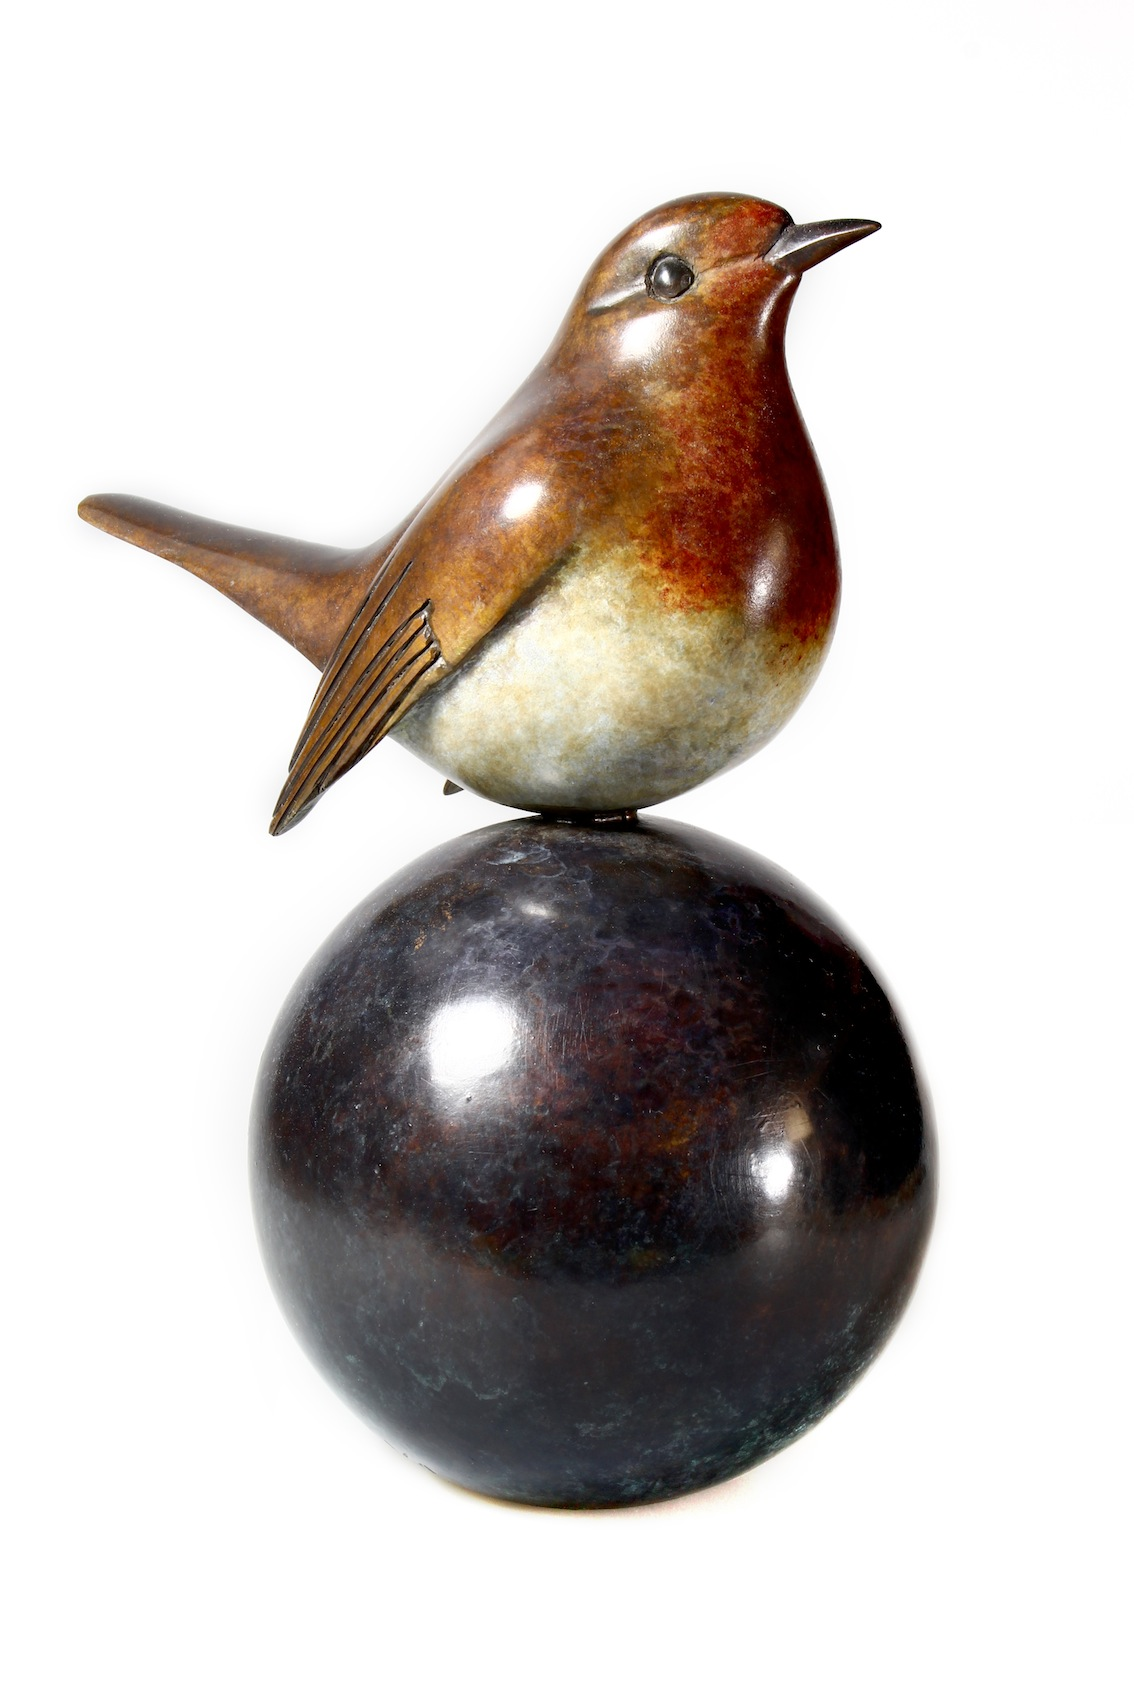 After finishing his degree in Salisbury, English sculptor Matt Duke has spent the last twenty years working with bronze; creating the exquisite shapes and vivid patinas that can be seen in his work today.